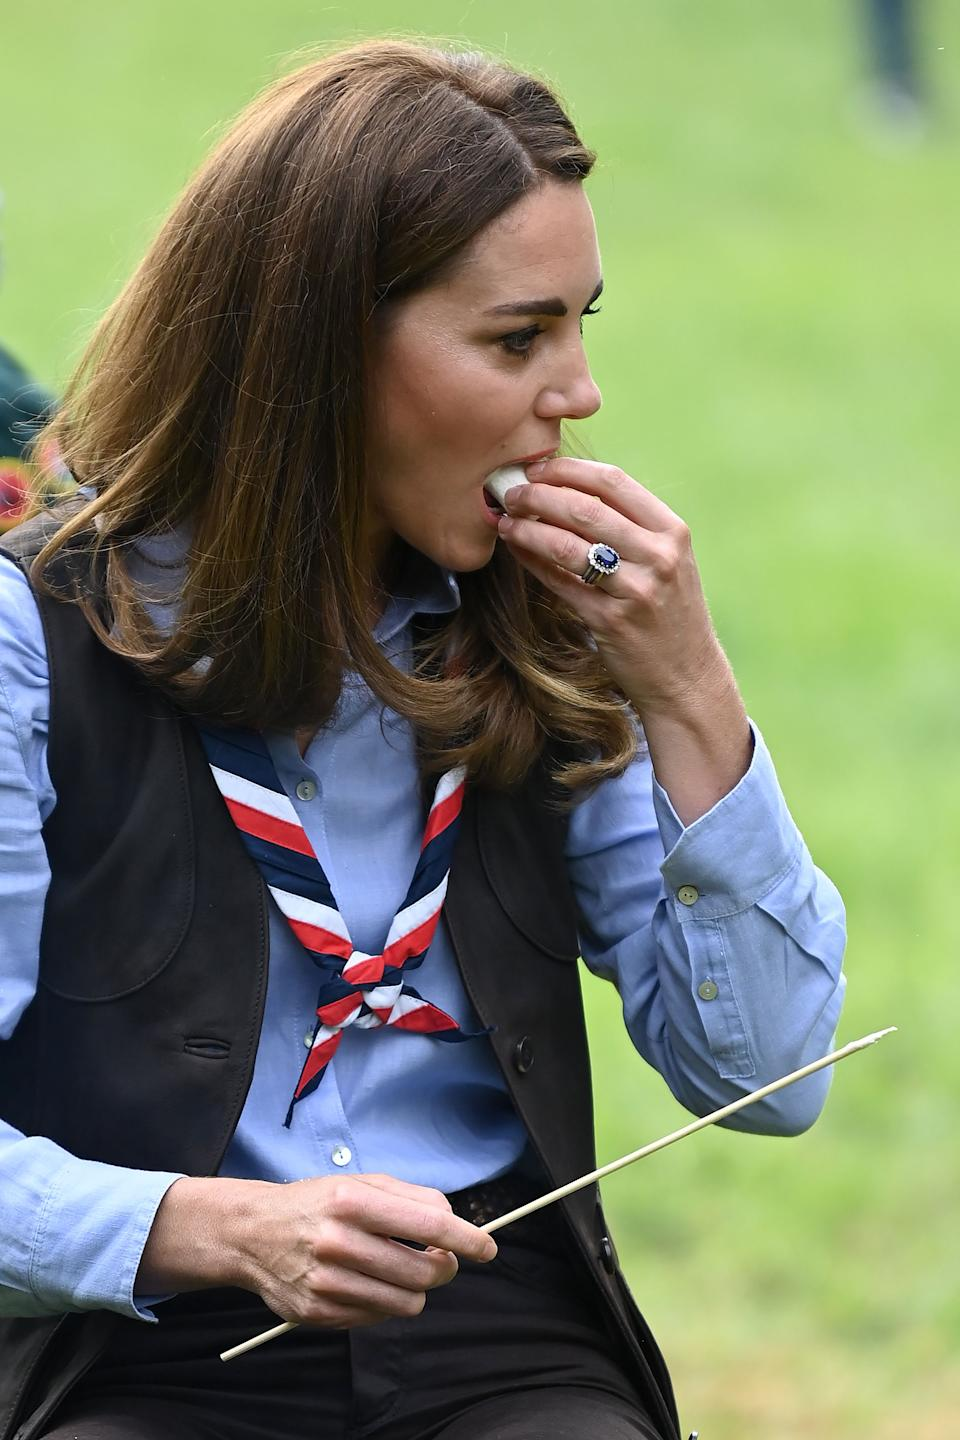 Britain's Catherine, Duchess of Cambridge, toasts marshmallows during her visit to a Scout Group in Northolt, northwest London on September 29, 2020, where she joined Cub and Beaver Scouts in outdoor activities. - The Duchess learned how the Scouts have adapted during the COVID-19 pandemic, and continued Scouting sessions and online activities. (Photo by DANIEL LEAL-OLIVAS / various sources / AFP) (Photo by DANIEL LEAL-OLIVAS/AFP via Getty Images)